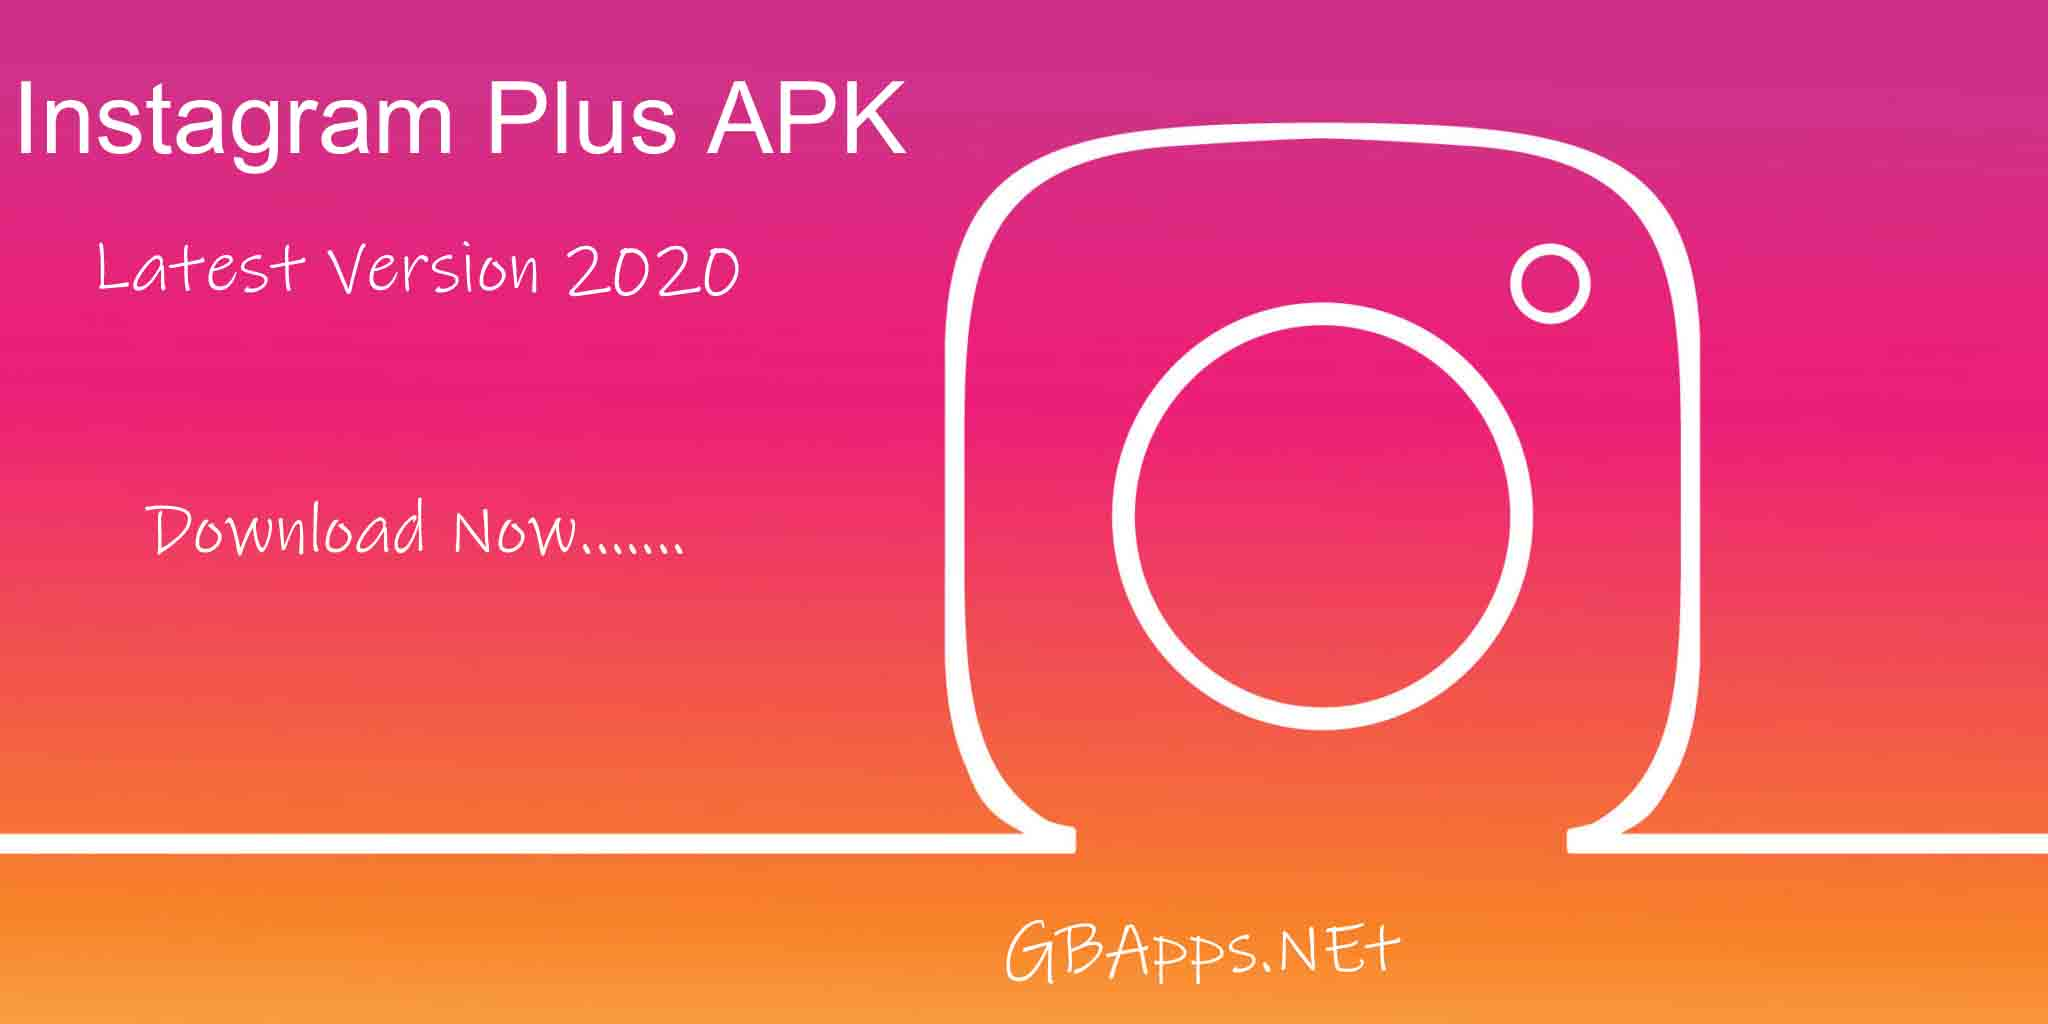 Instagram Plus APK